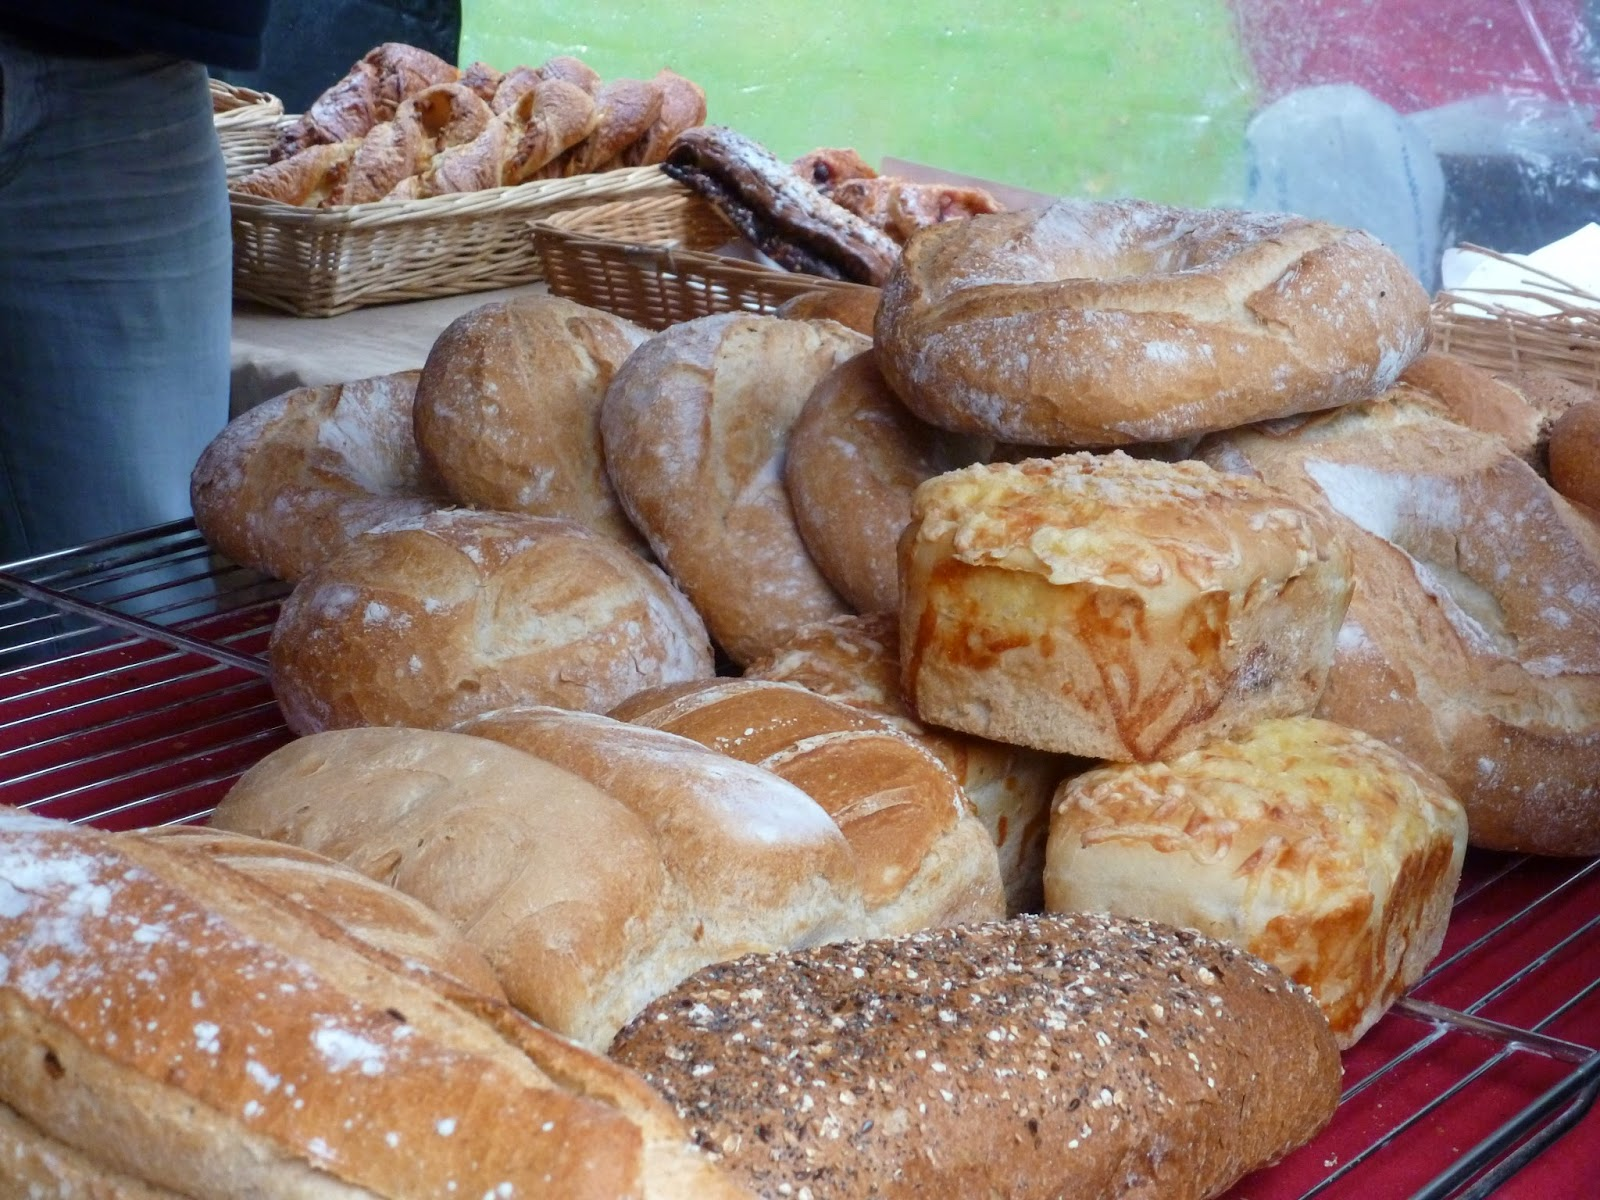 Farmers market stall fresh bread